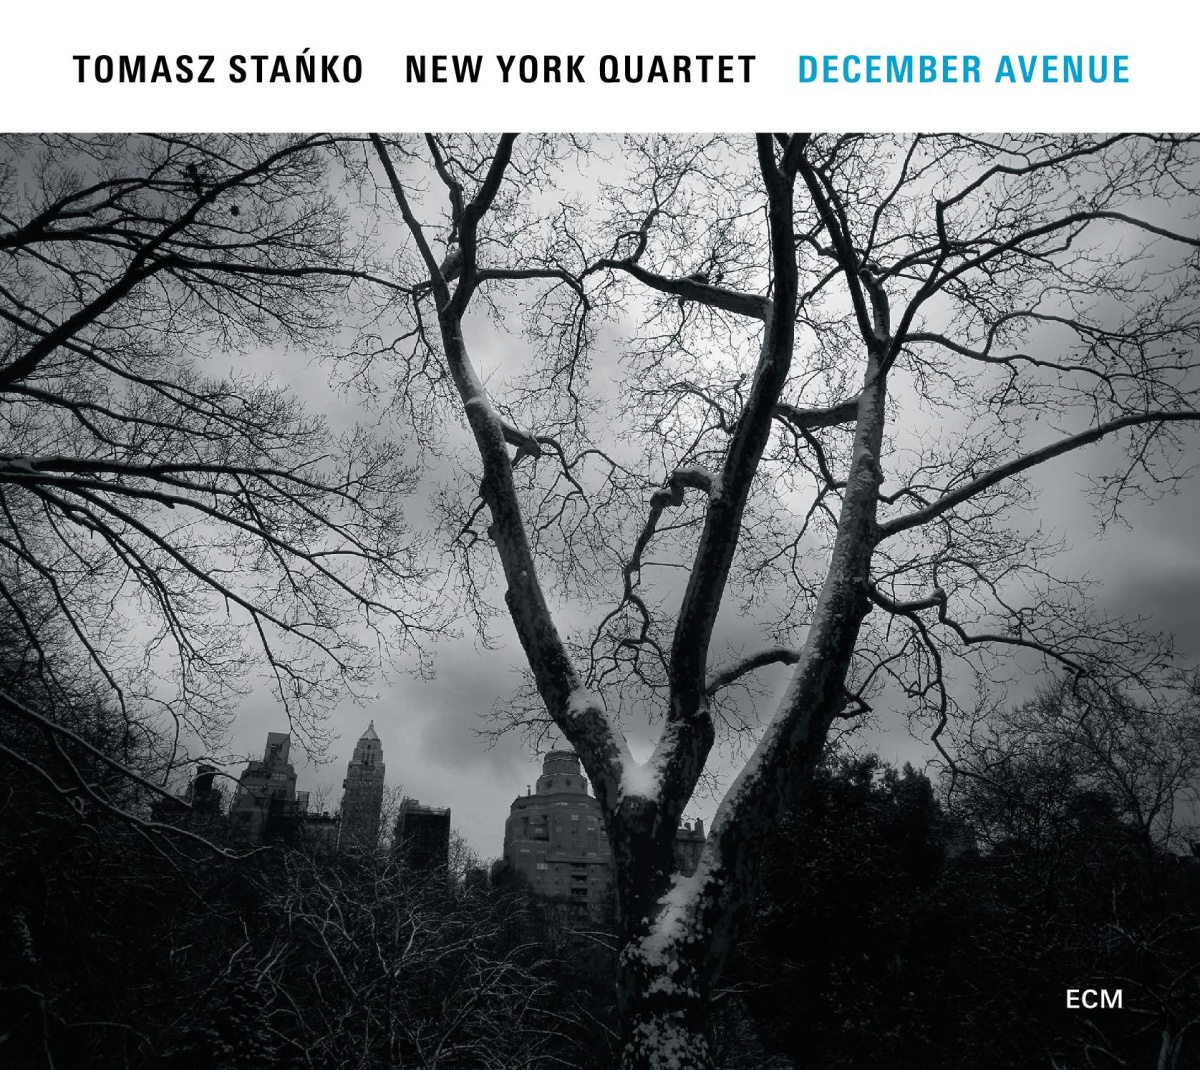 REVIEW: Tomasz Stanko New York Quartet - December Avenue